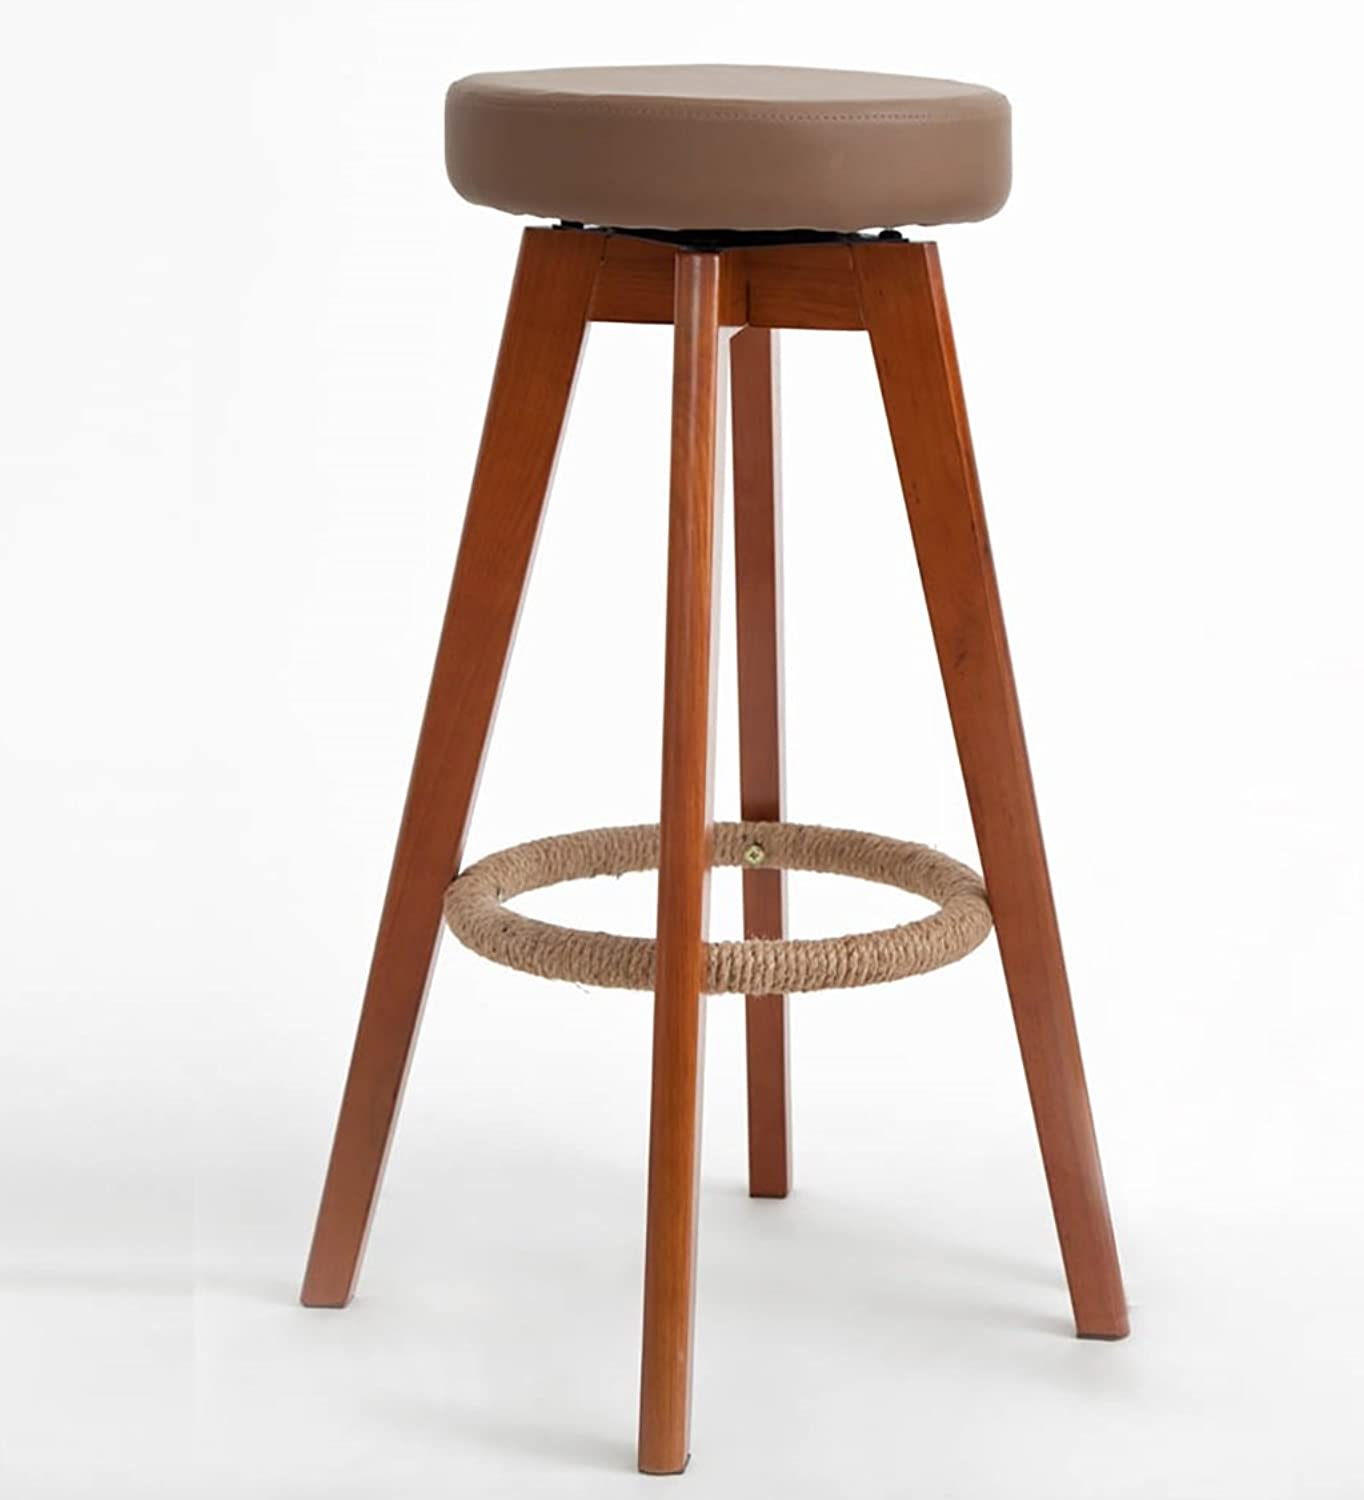 Barstools Modern Style Bar Stools Counter Chair,Multi-color Optional Modern redating Wood Assembly otating Wood Bar Counter Stools,Size  35  73cm Wooden Bar Stools (color   C, Size   455732cm)